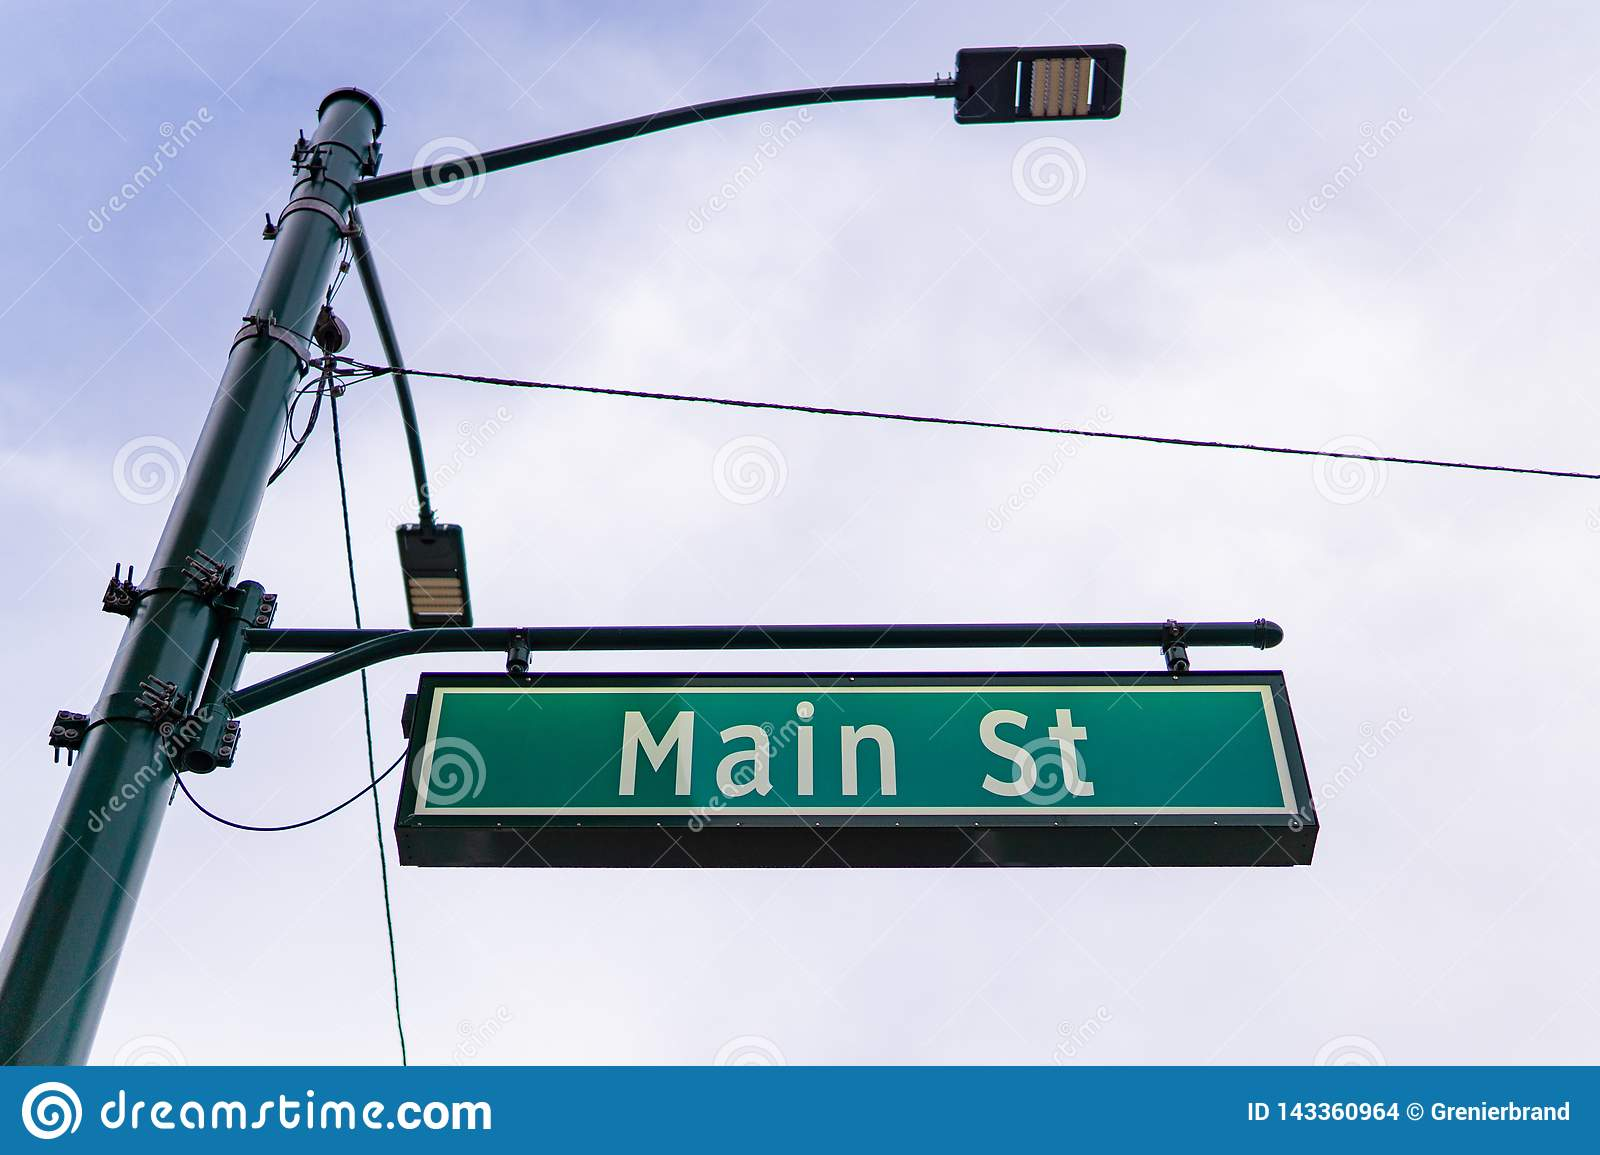 Main street sign downtown